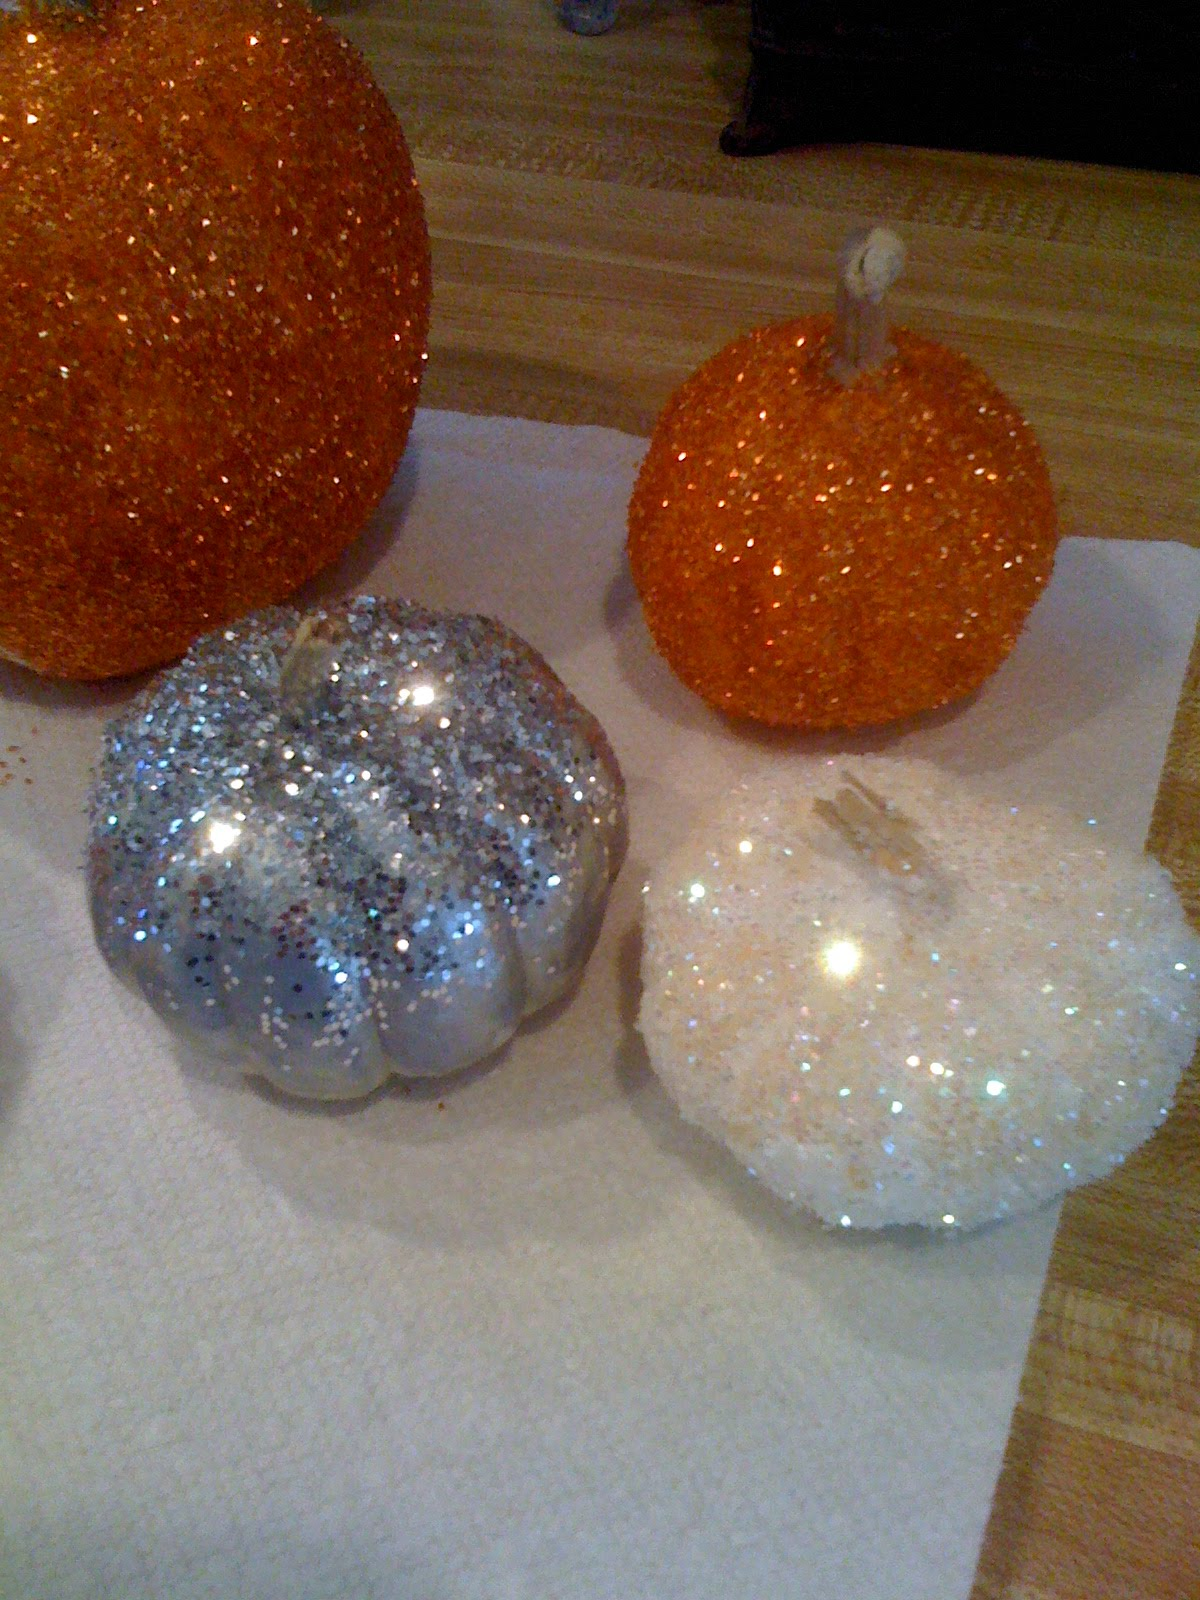 White glitter spray paint -  To Take A White Pumpkin And Paint It Silver Then Sprinkle The Silver Glitter Over The Wet Paint And Once It Has Dried Seal It With Clear Spray Paint